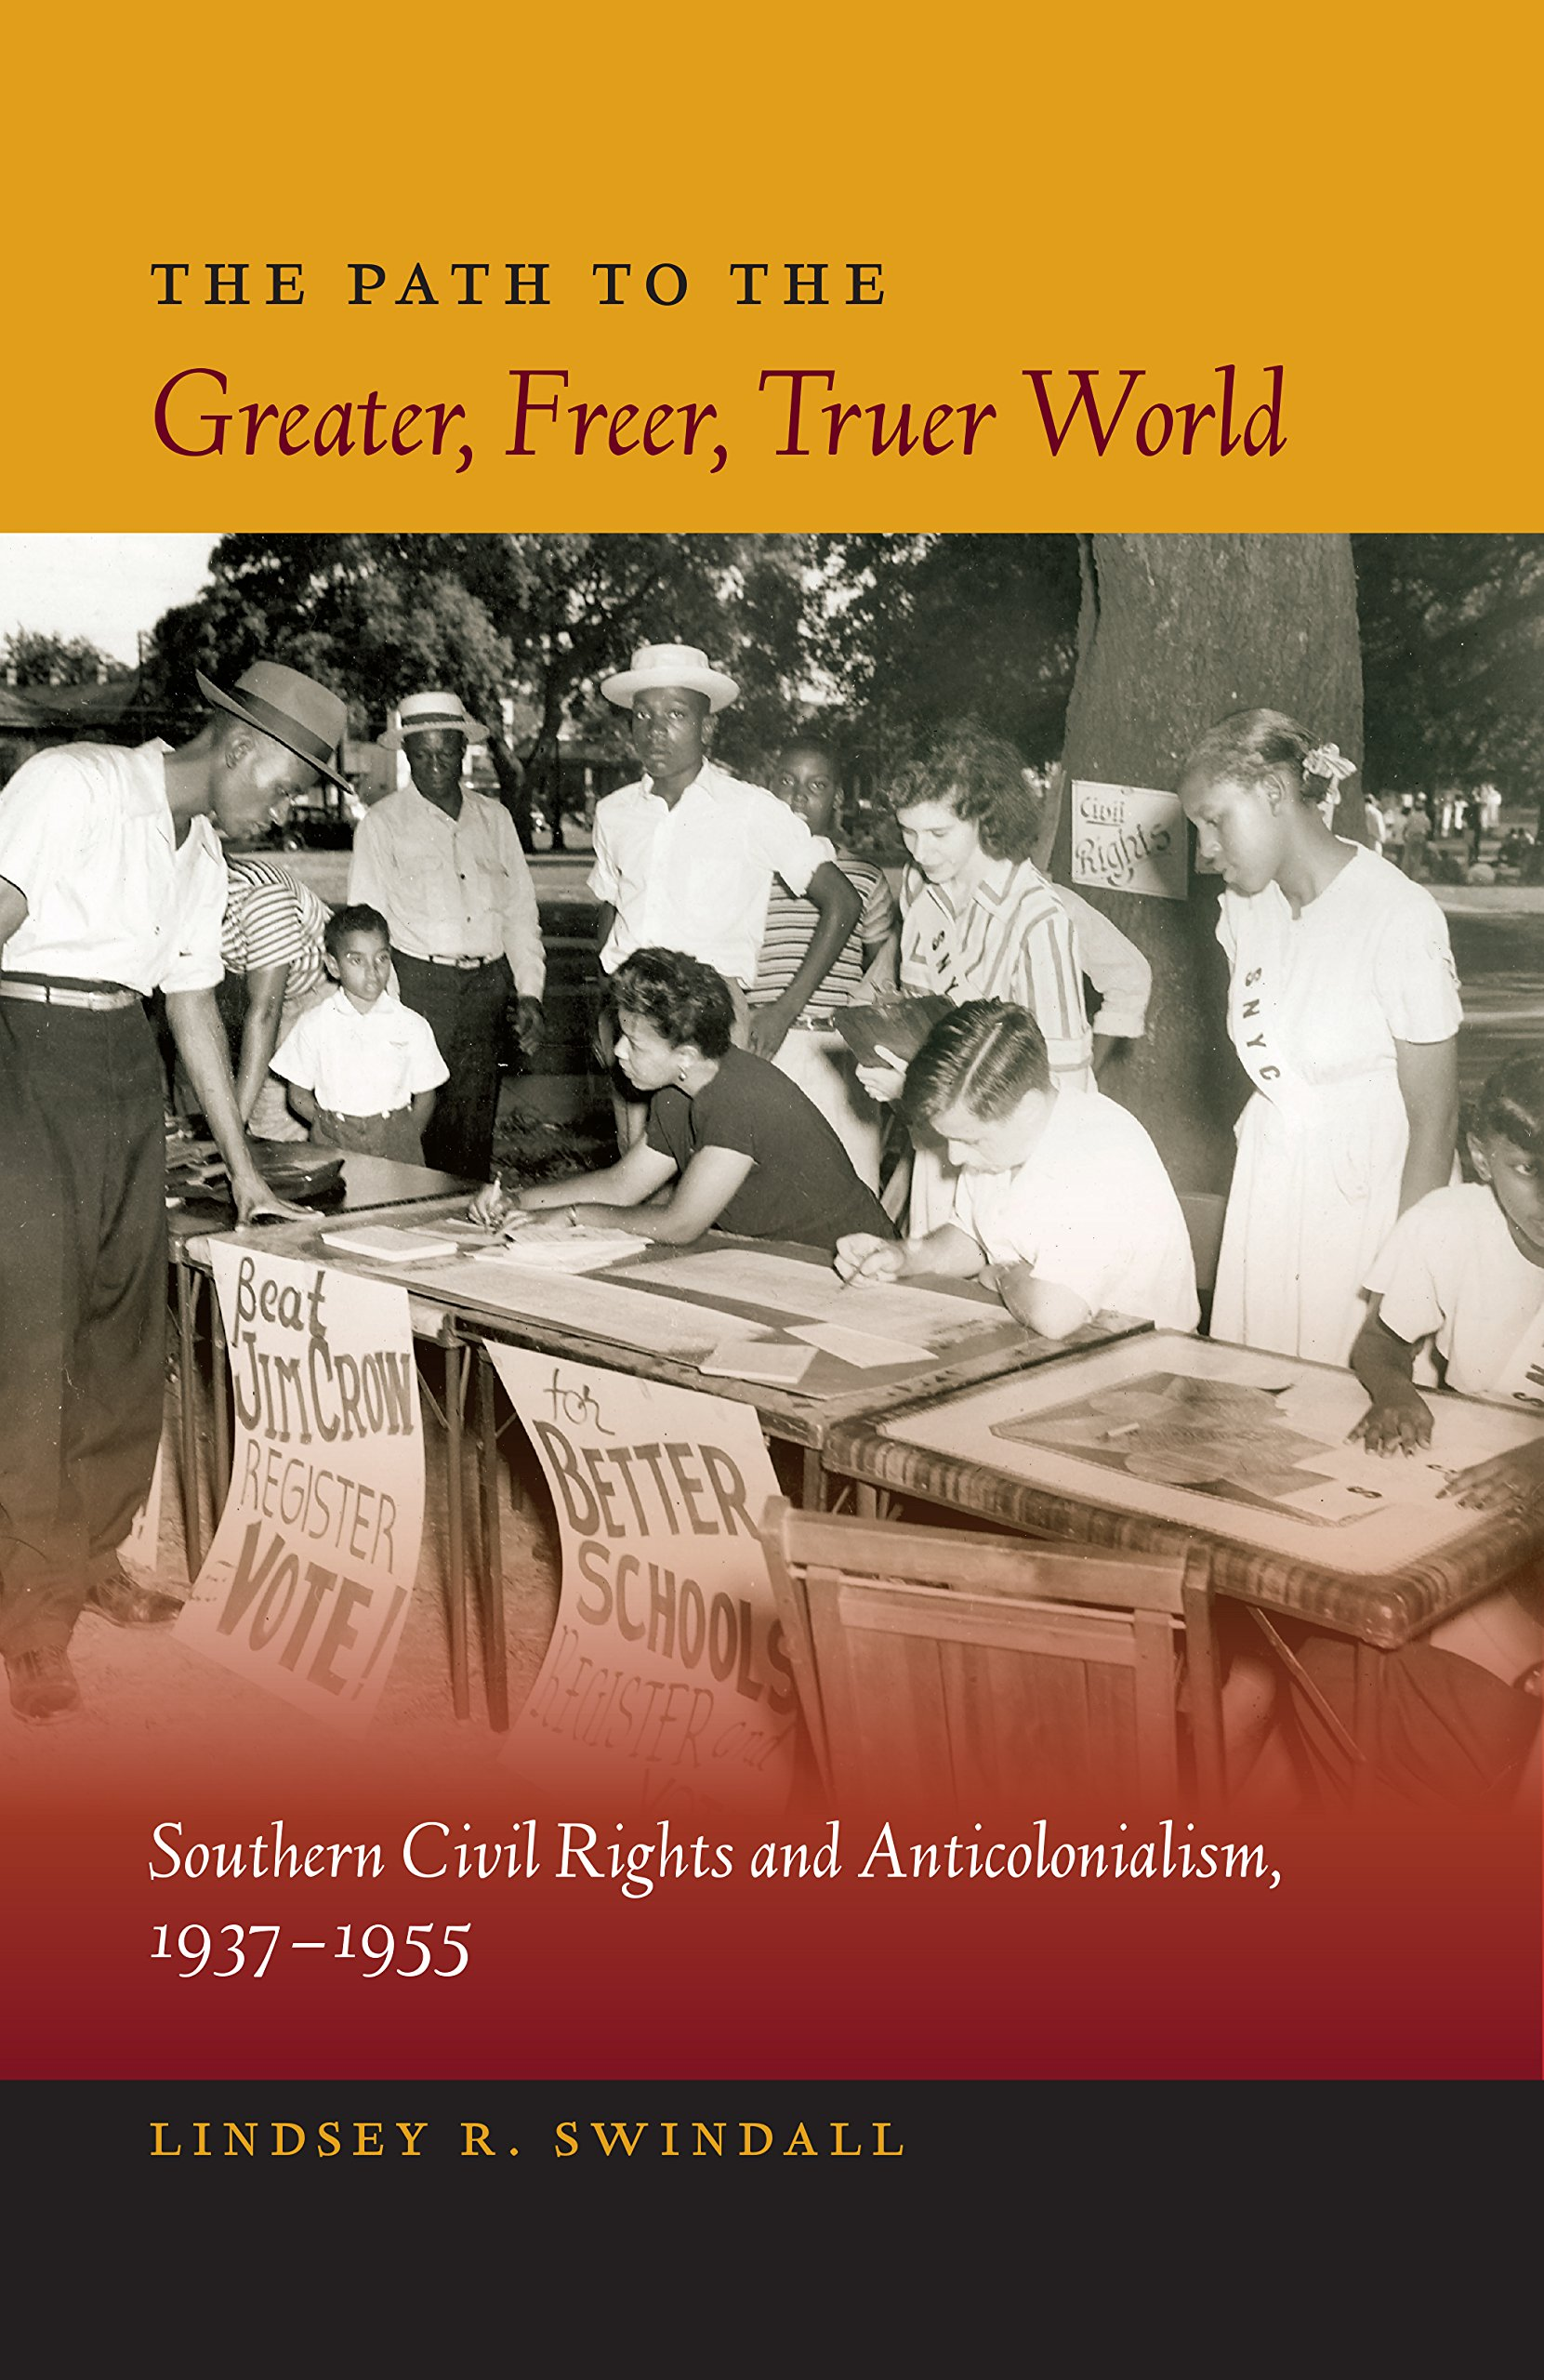 Download The Path to the Greater, Freer, Truer World: Southern Civil Rights and Anticolonialism, 1937–1955 (New Perspectives on the History of the South) ebook